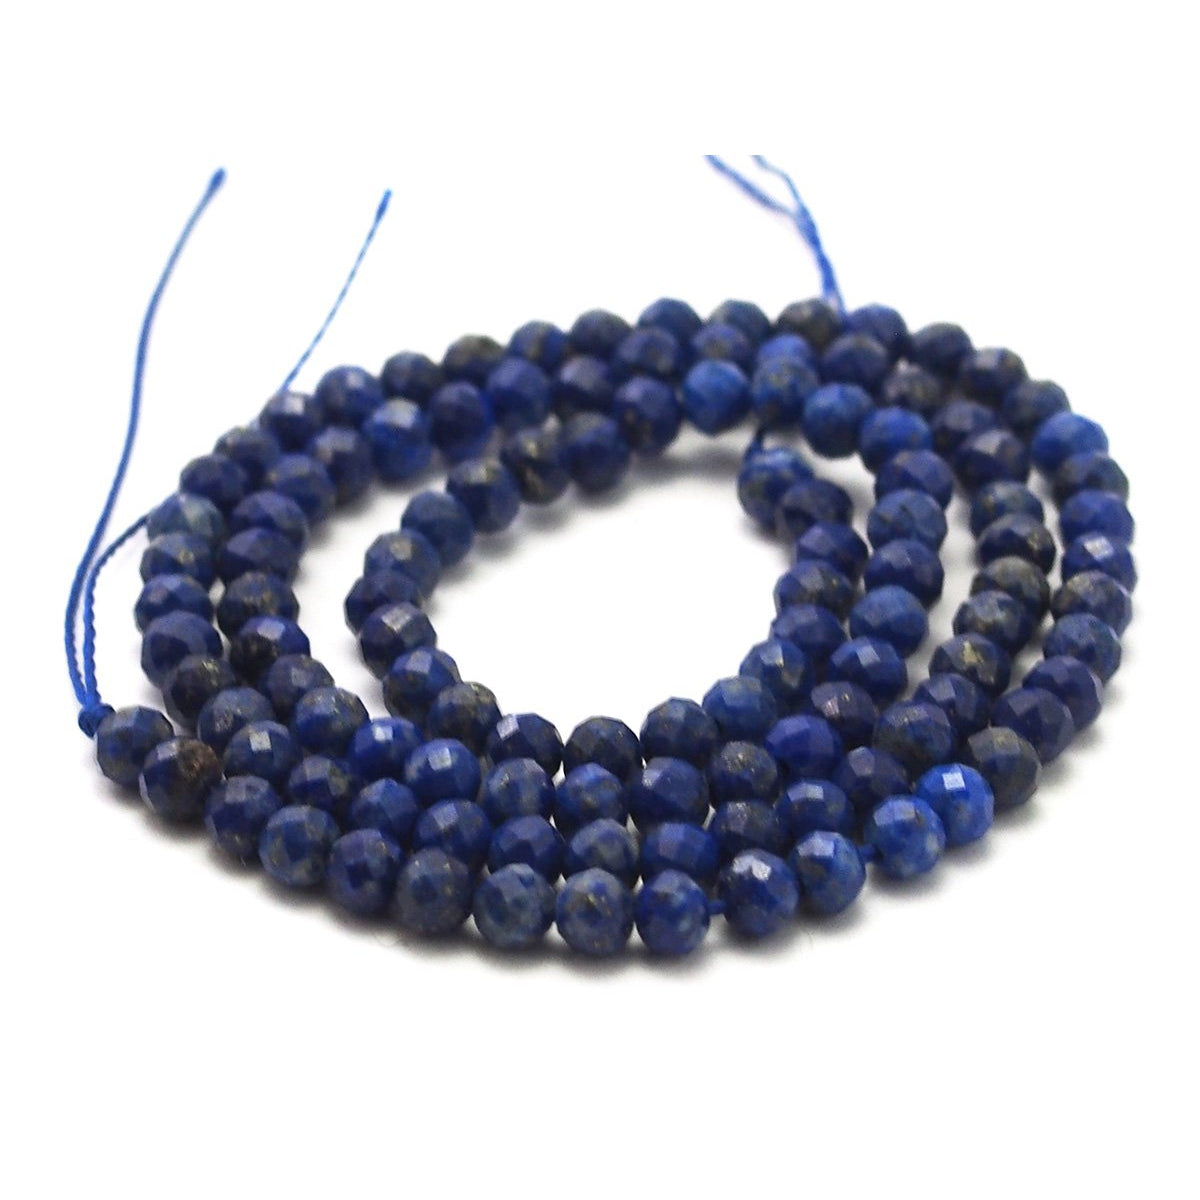 Lapis Lazuli Faceted Rounds 4mm